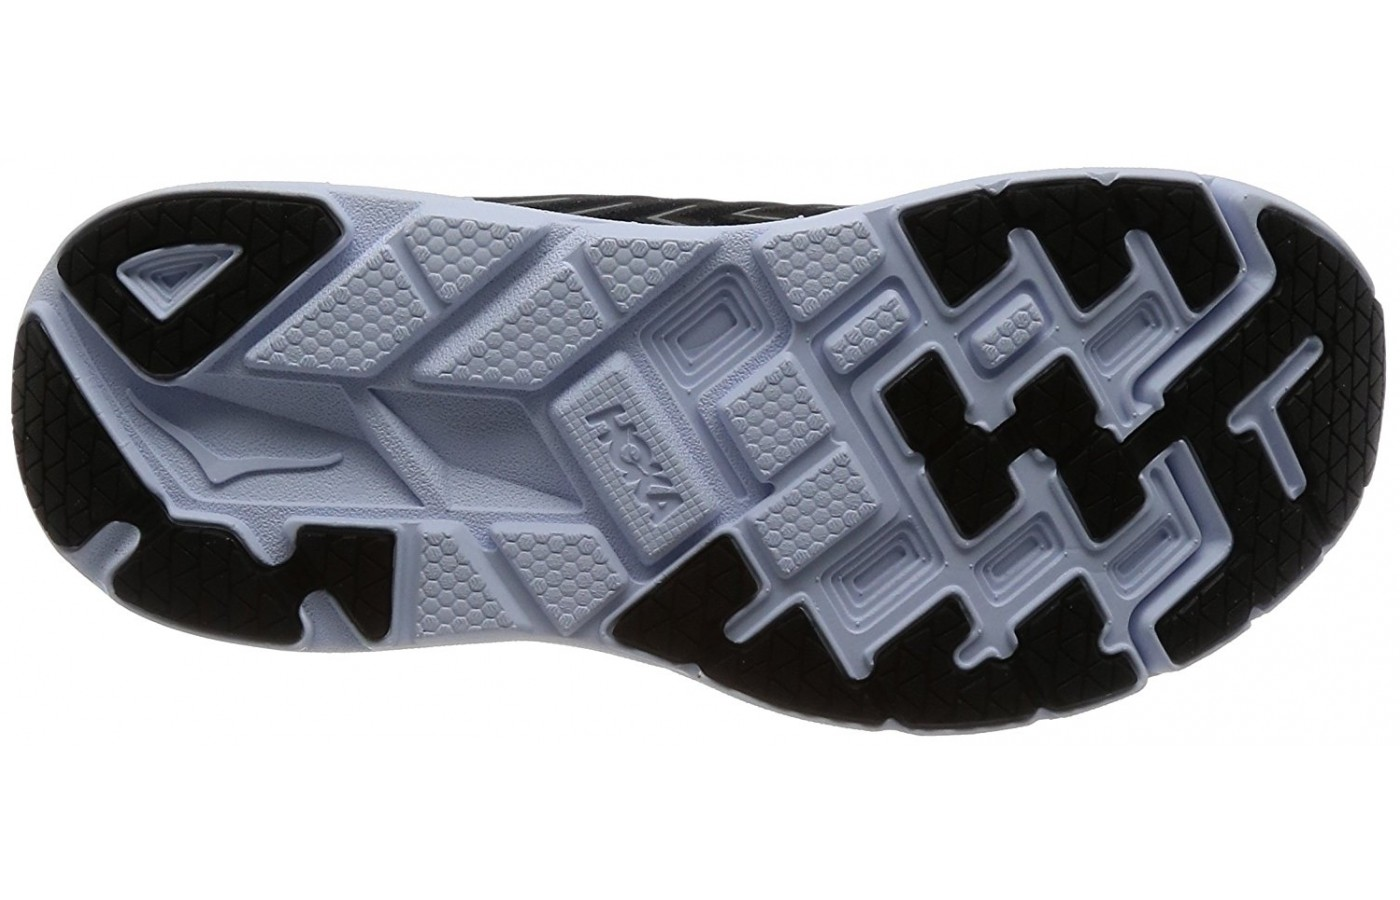 Clifton 4 sole